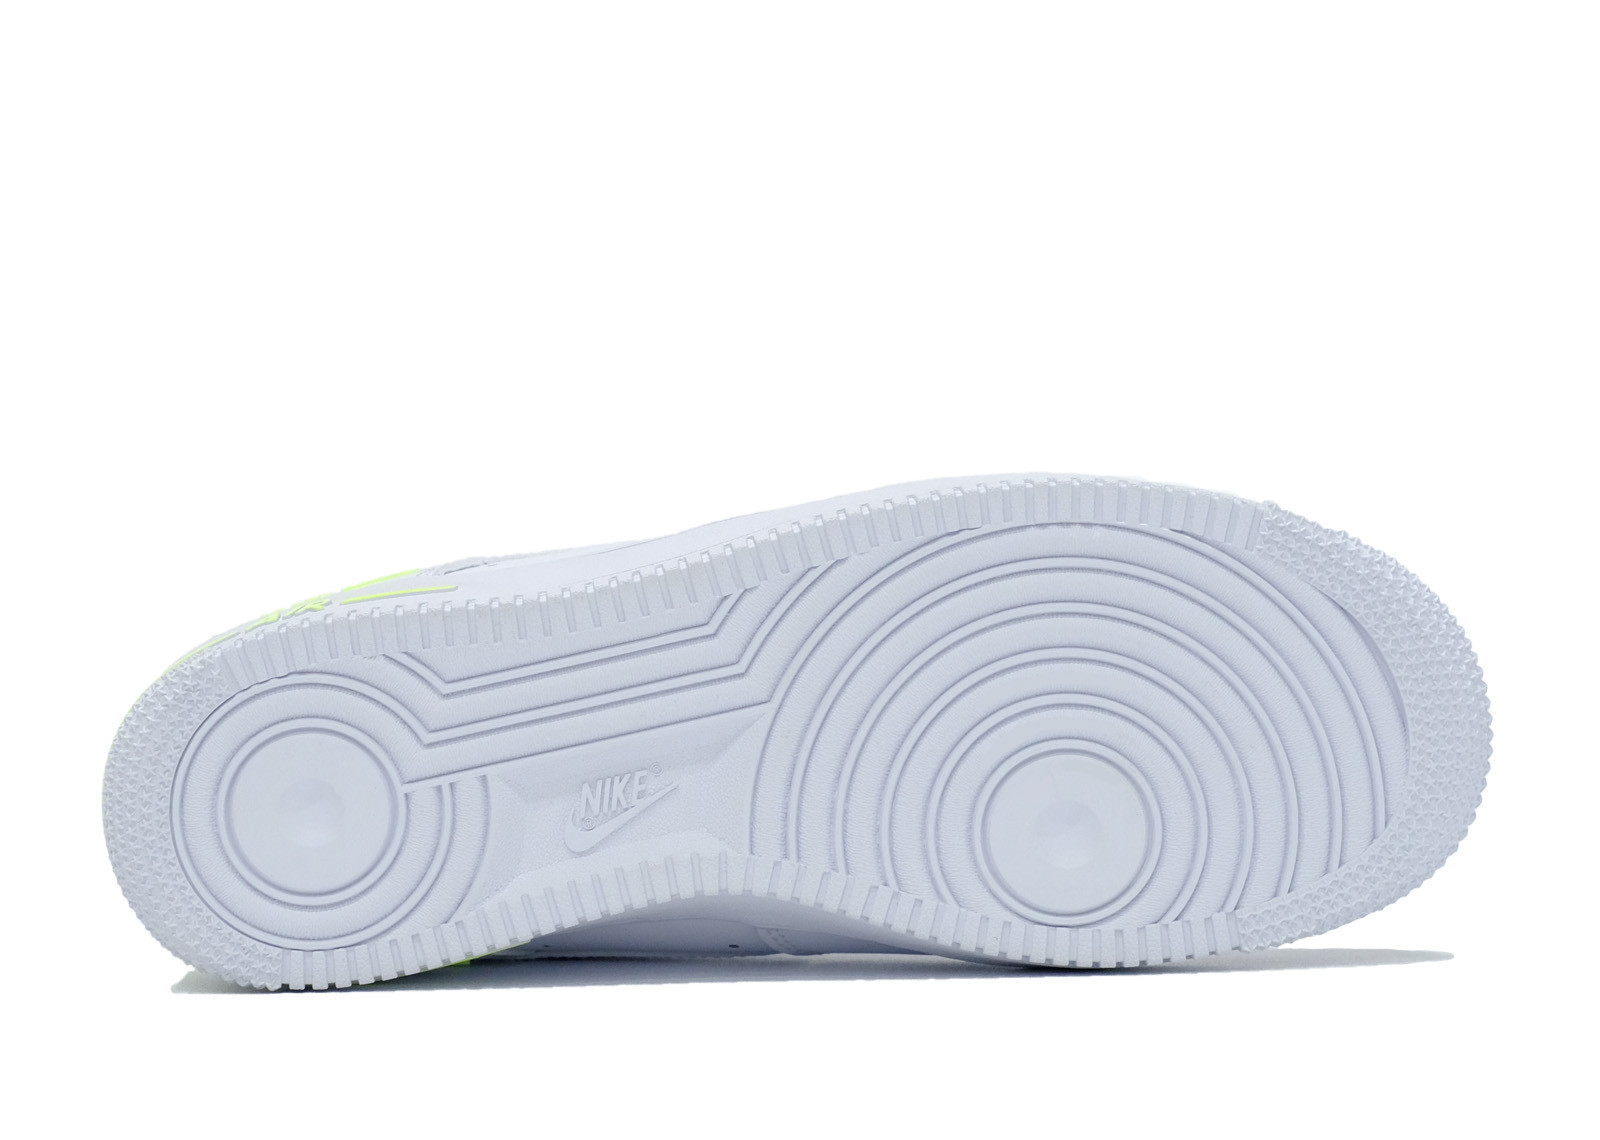 AIR FORCE 1 LOW DOUBLE AIR WHITE BARELY VOLT image 4